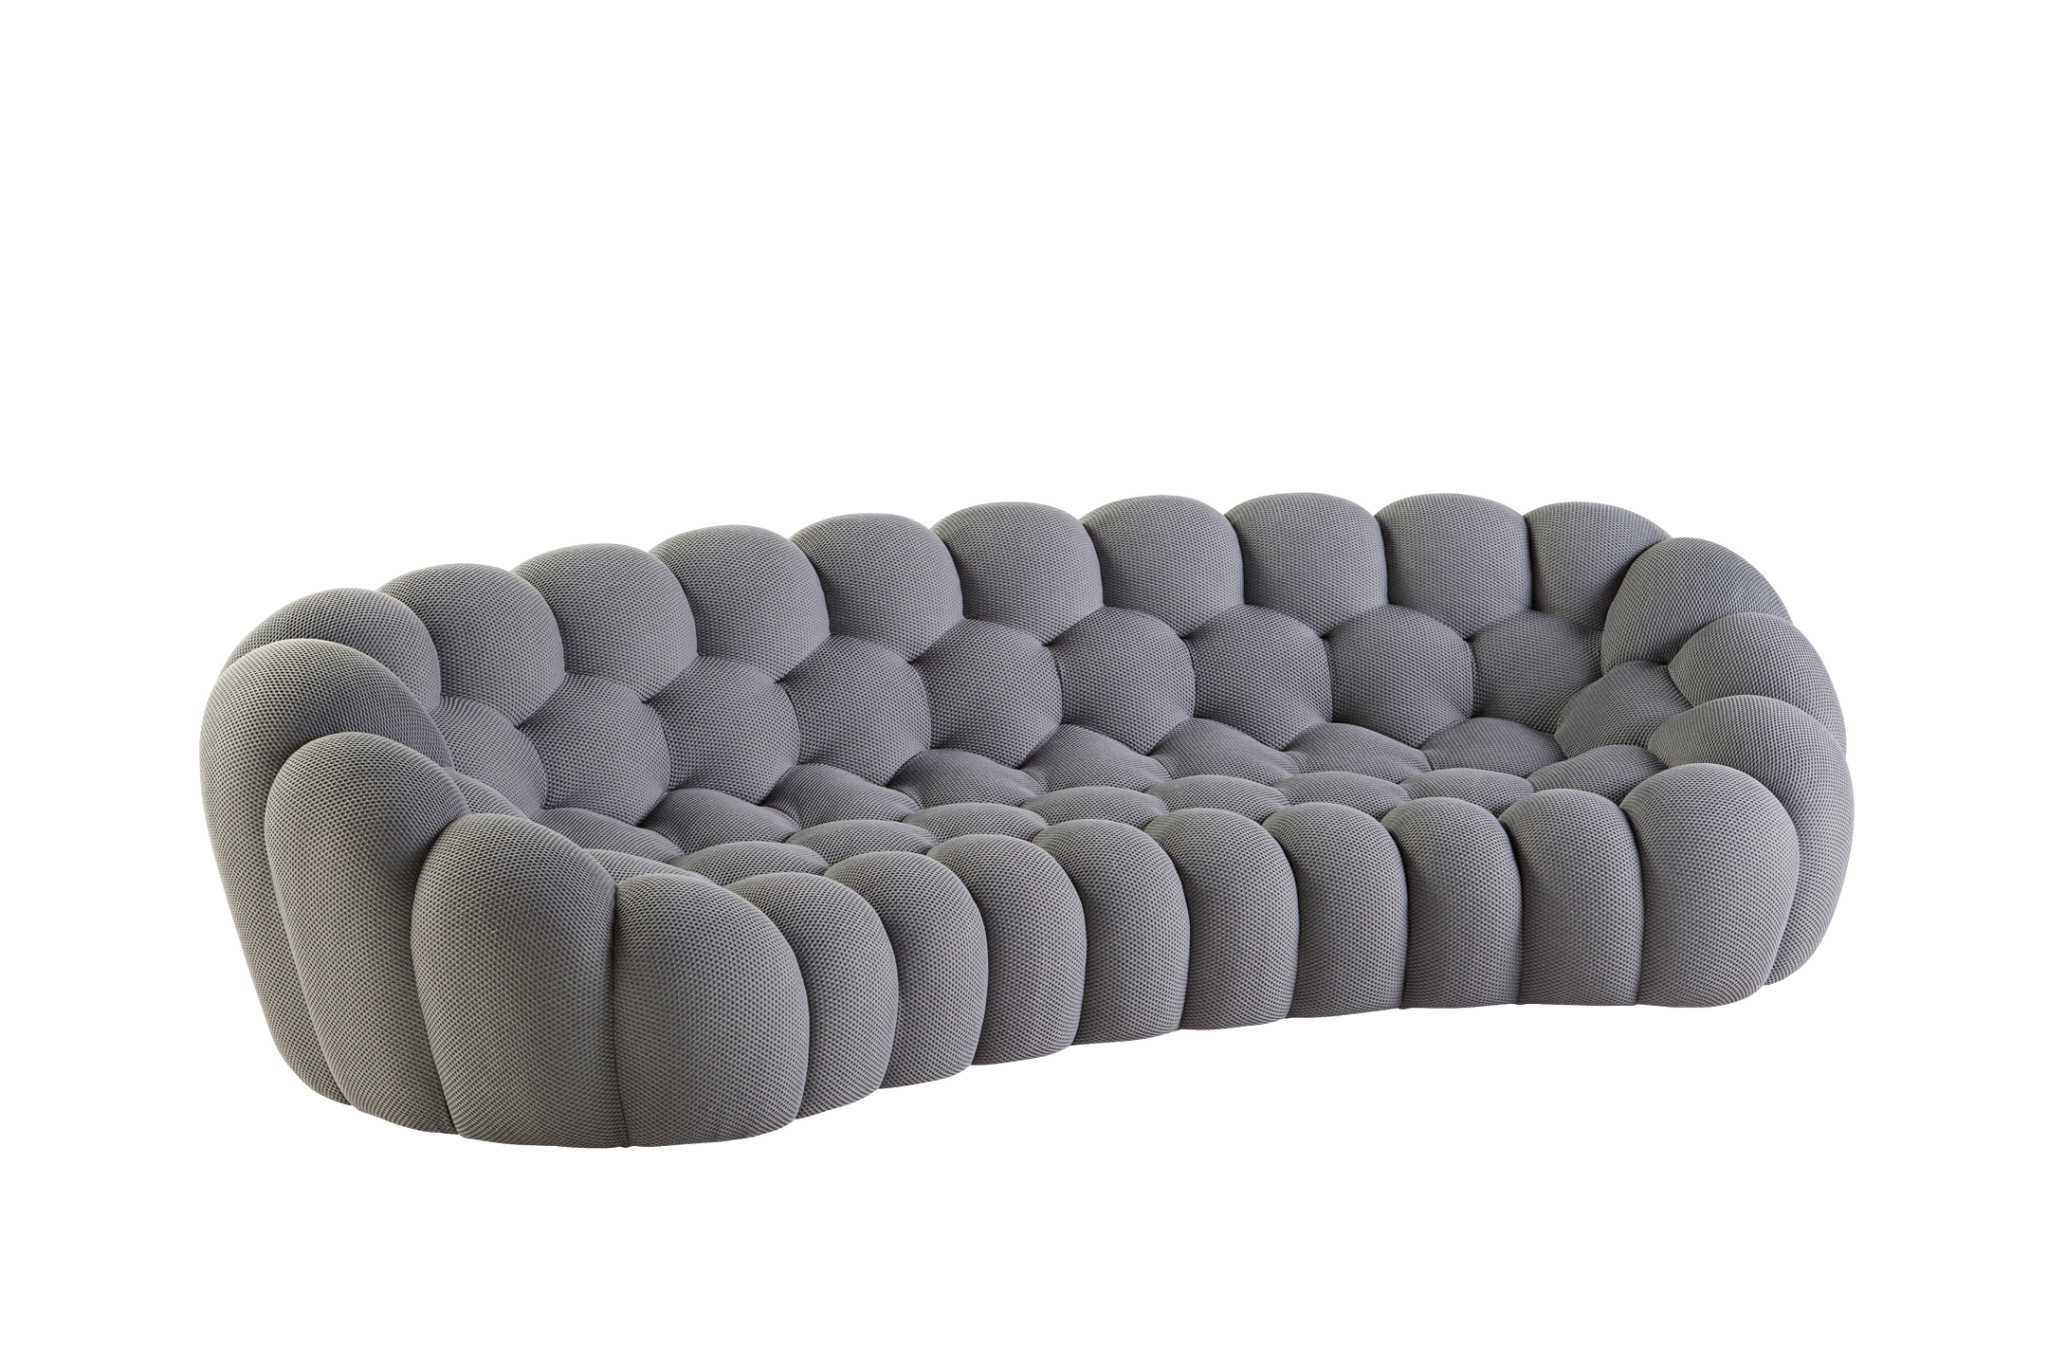 Sofa For Sale Houston Roche Bobois New Collection Includes Big Bubble Sofa